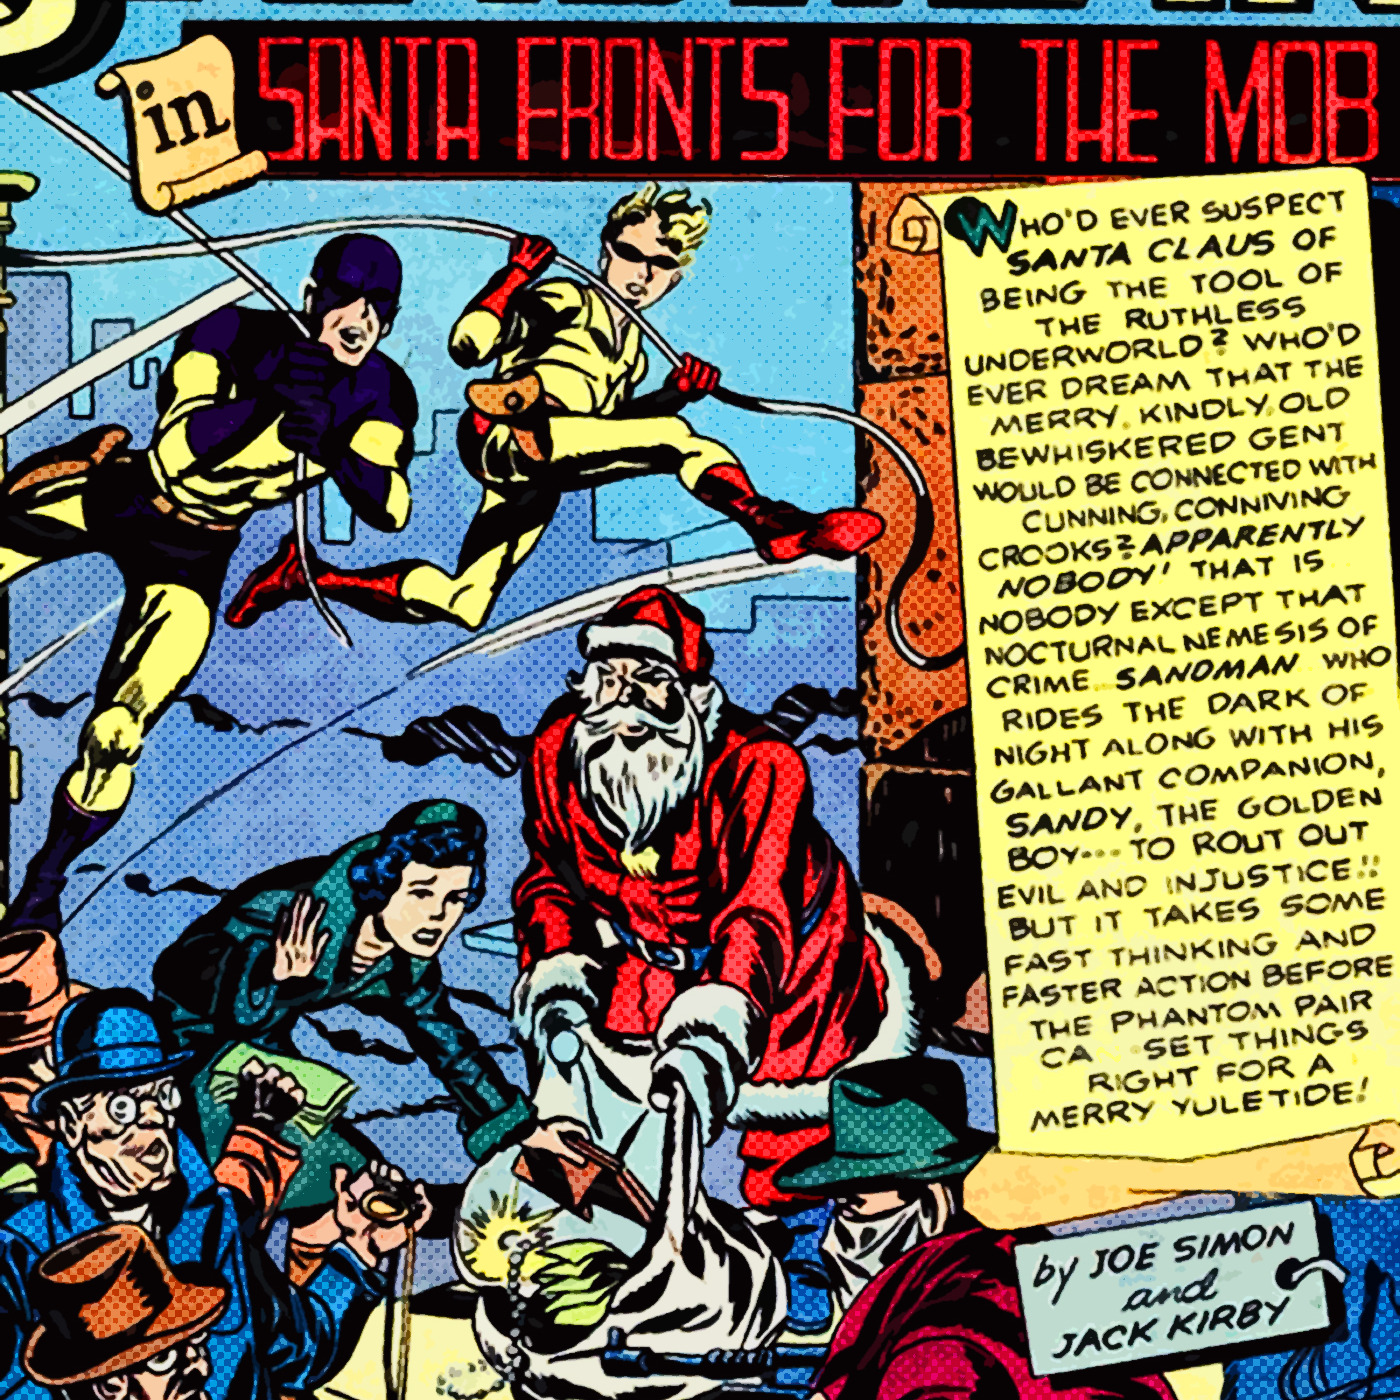 Mini Episode 41: A Sandman Christmas Comics In The Golden Age podcast